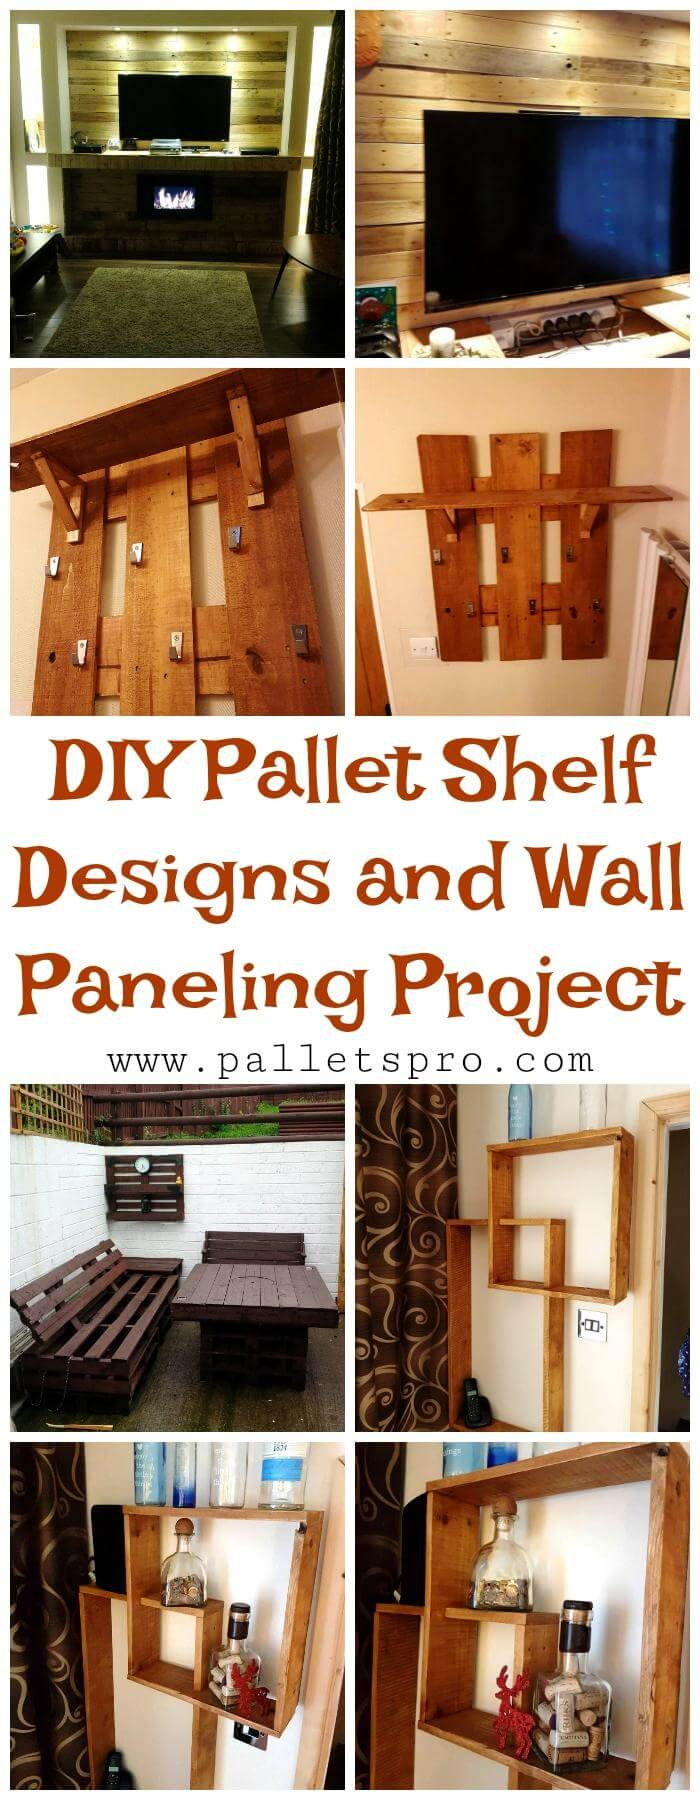 Pallet Shelf Designs and Wall Paneling